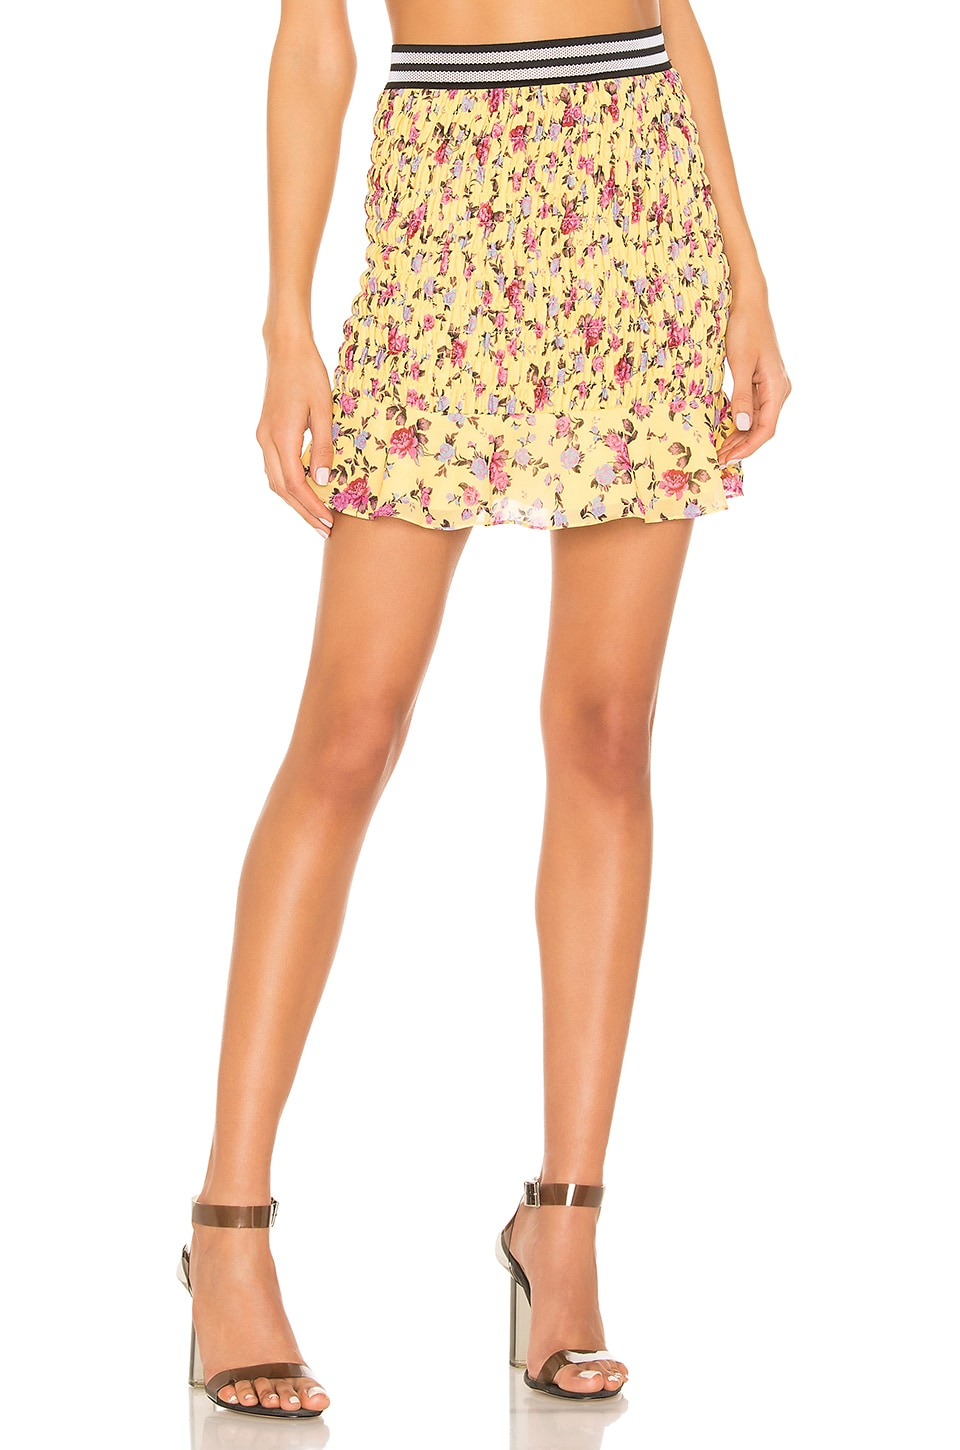 For Love & Lemons Odette Mini Skirt in Yellow